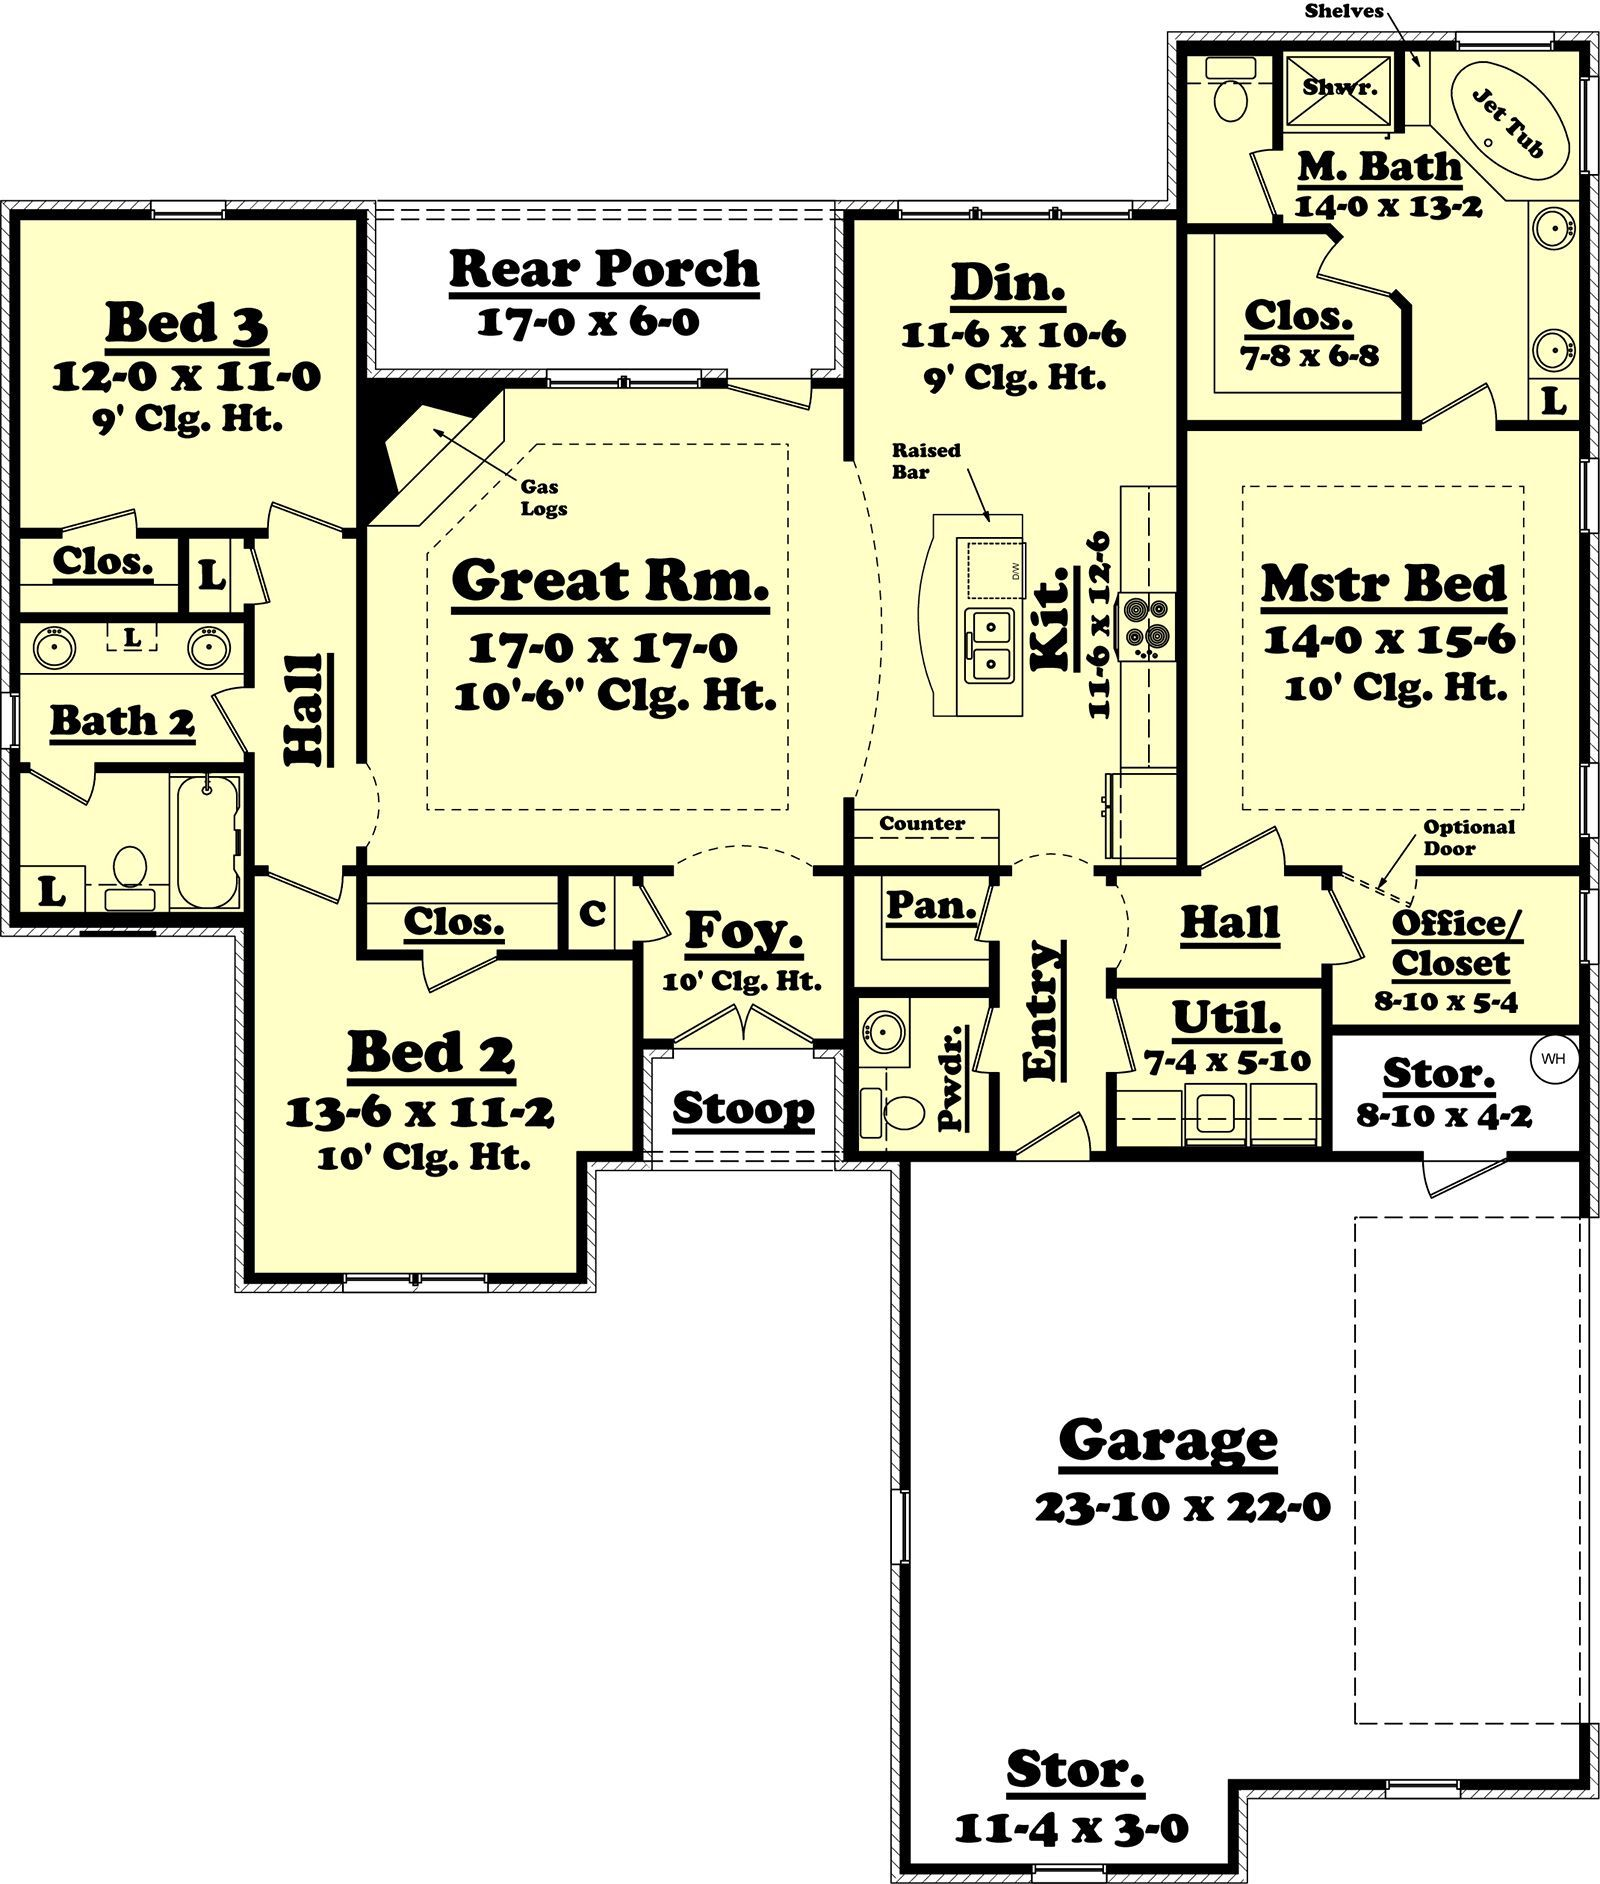 1800 Sq Foot Metal Building Homes Floor Plans 1800 Sq Ft House Plans 2016 House Plans And Ho House Plans One Story New House Plans Ranch Style House Plans